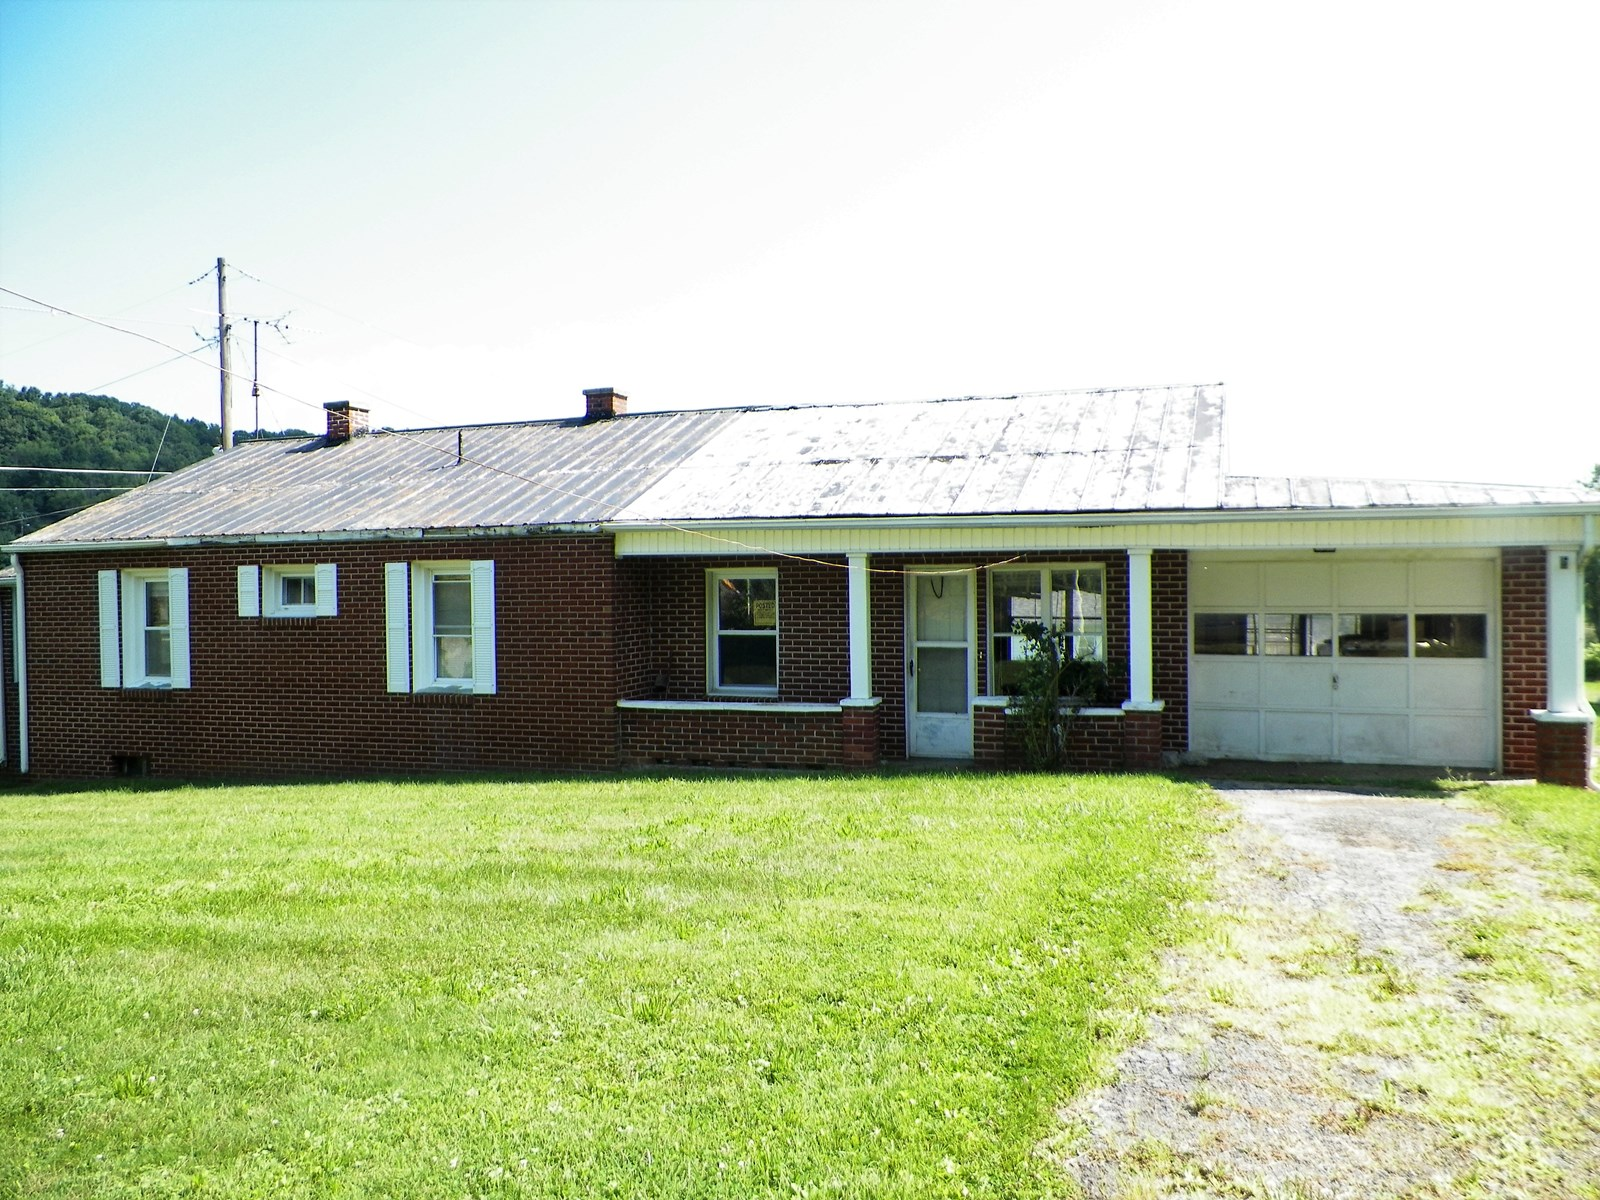 BRICK HOME IN WYTHEVILLE, VA